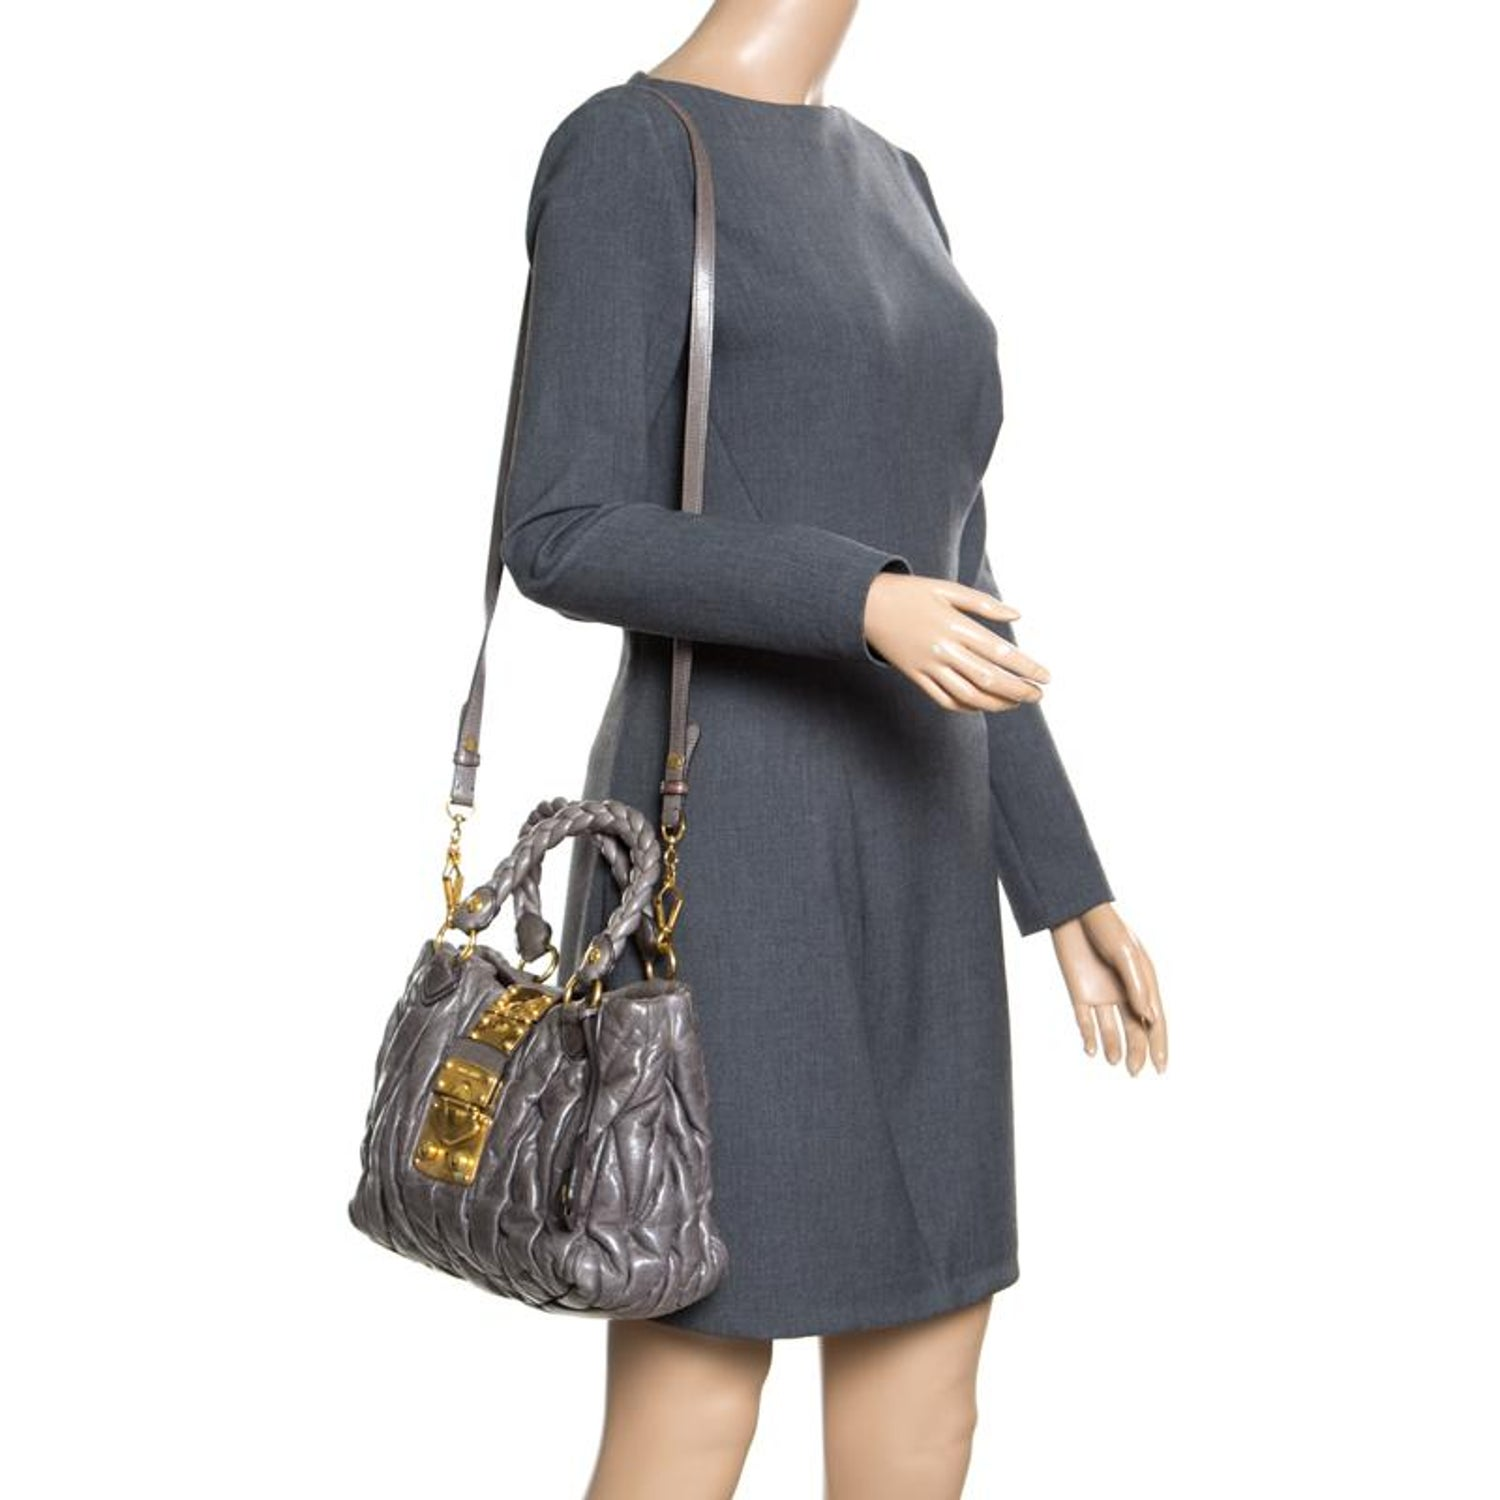 Miu Miu Grey Matelasse Leather Coffer Two Way Top Handle Bag For Sale at  1stdibs b49b0d1ed35ef